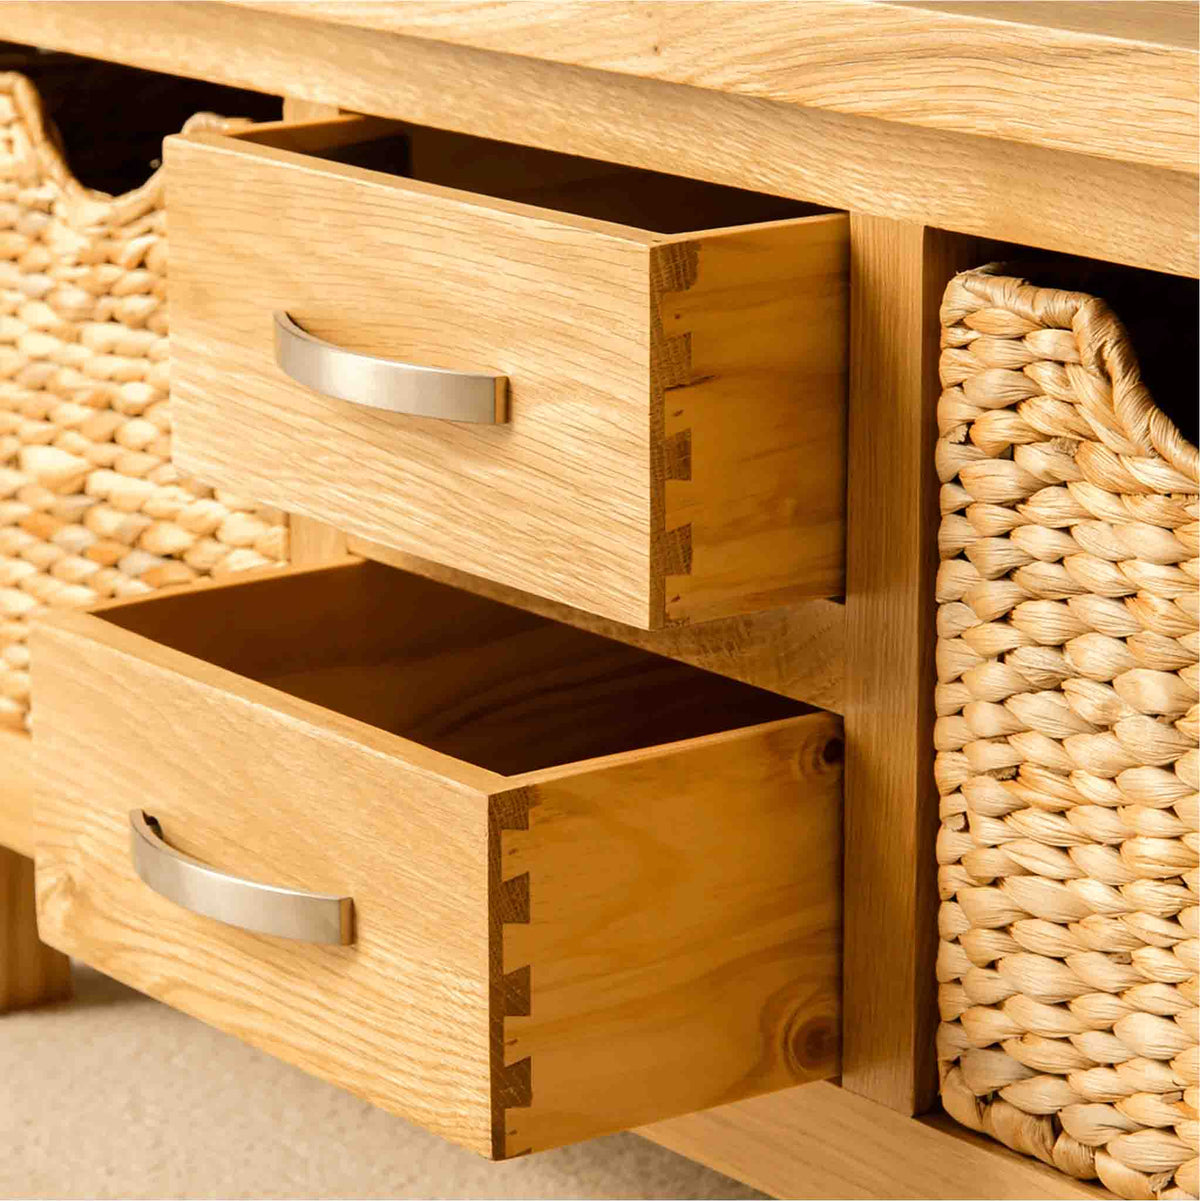 London Oak Coffee Table with Baskets - Lifestyle of dovetail joints on drawer